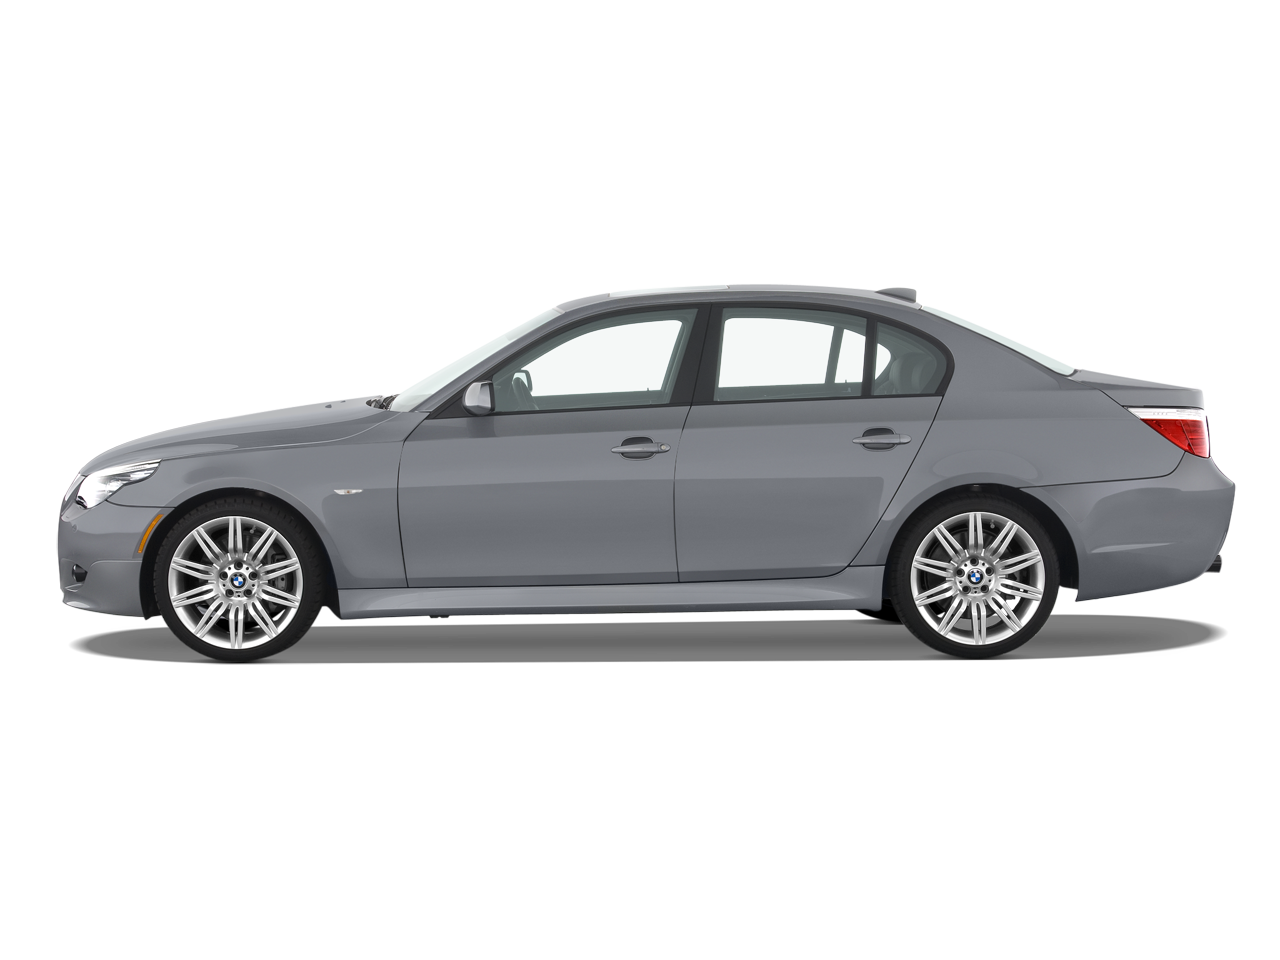 2009 bmw 5 series and 3 series gran turismo bmw 4 door. Black Bedroom Furniture Sets. Home Design Ideas